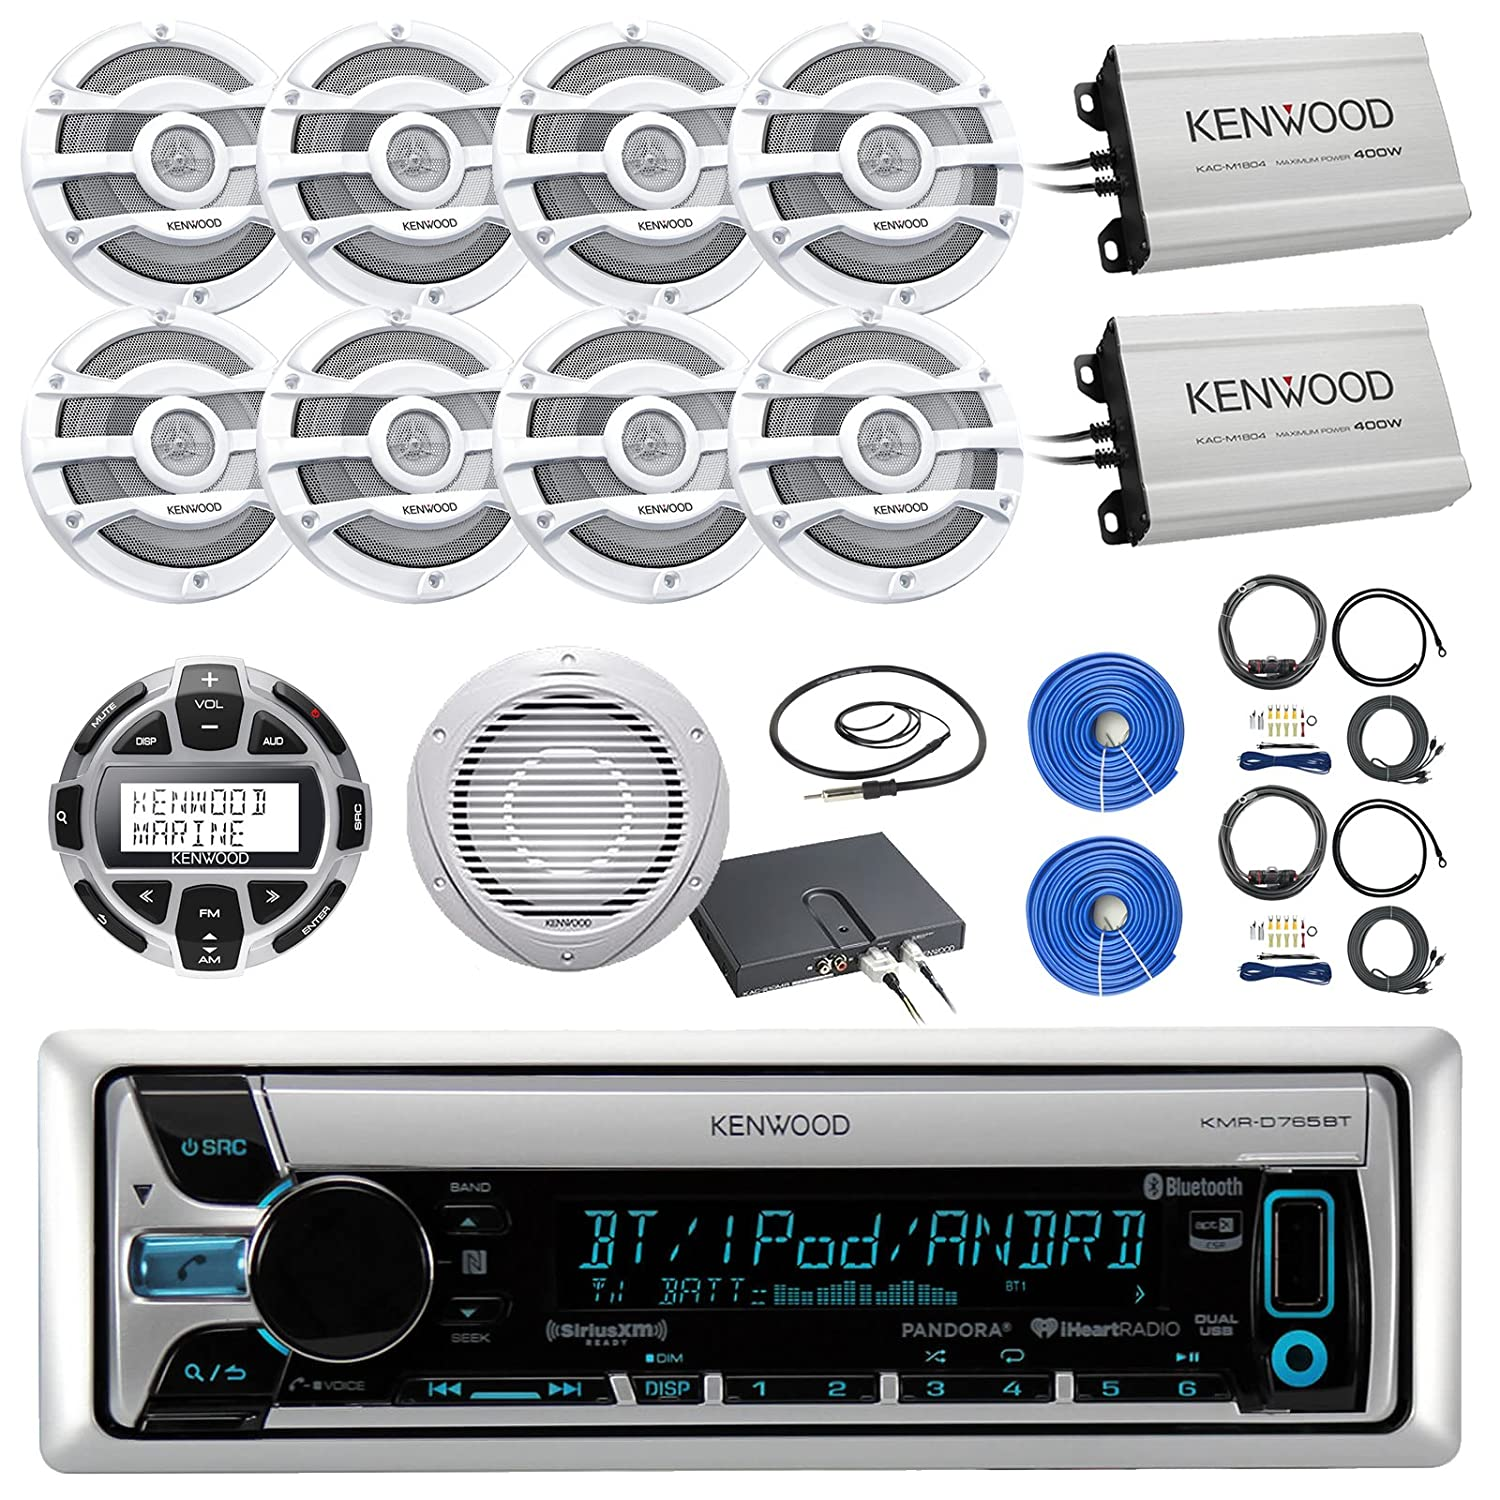 813K 4kzKjL._SL1500_ amazon com kenwood kmrd765bt marine cd receiver with bluetooth kenwood kmr-550u wiring diagram at gsmportal.co